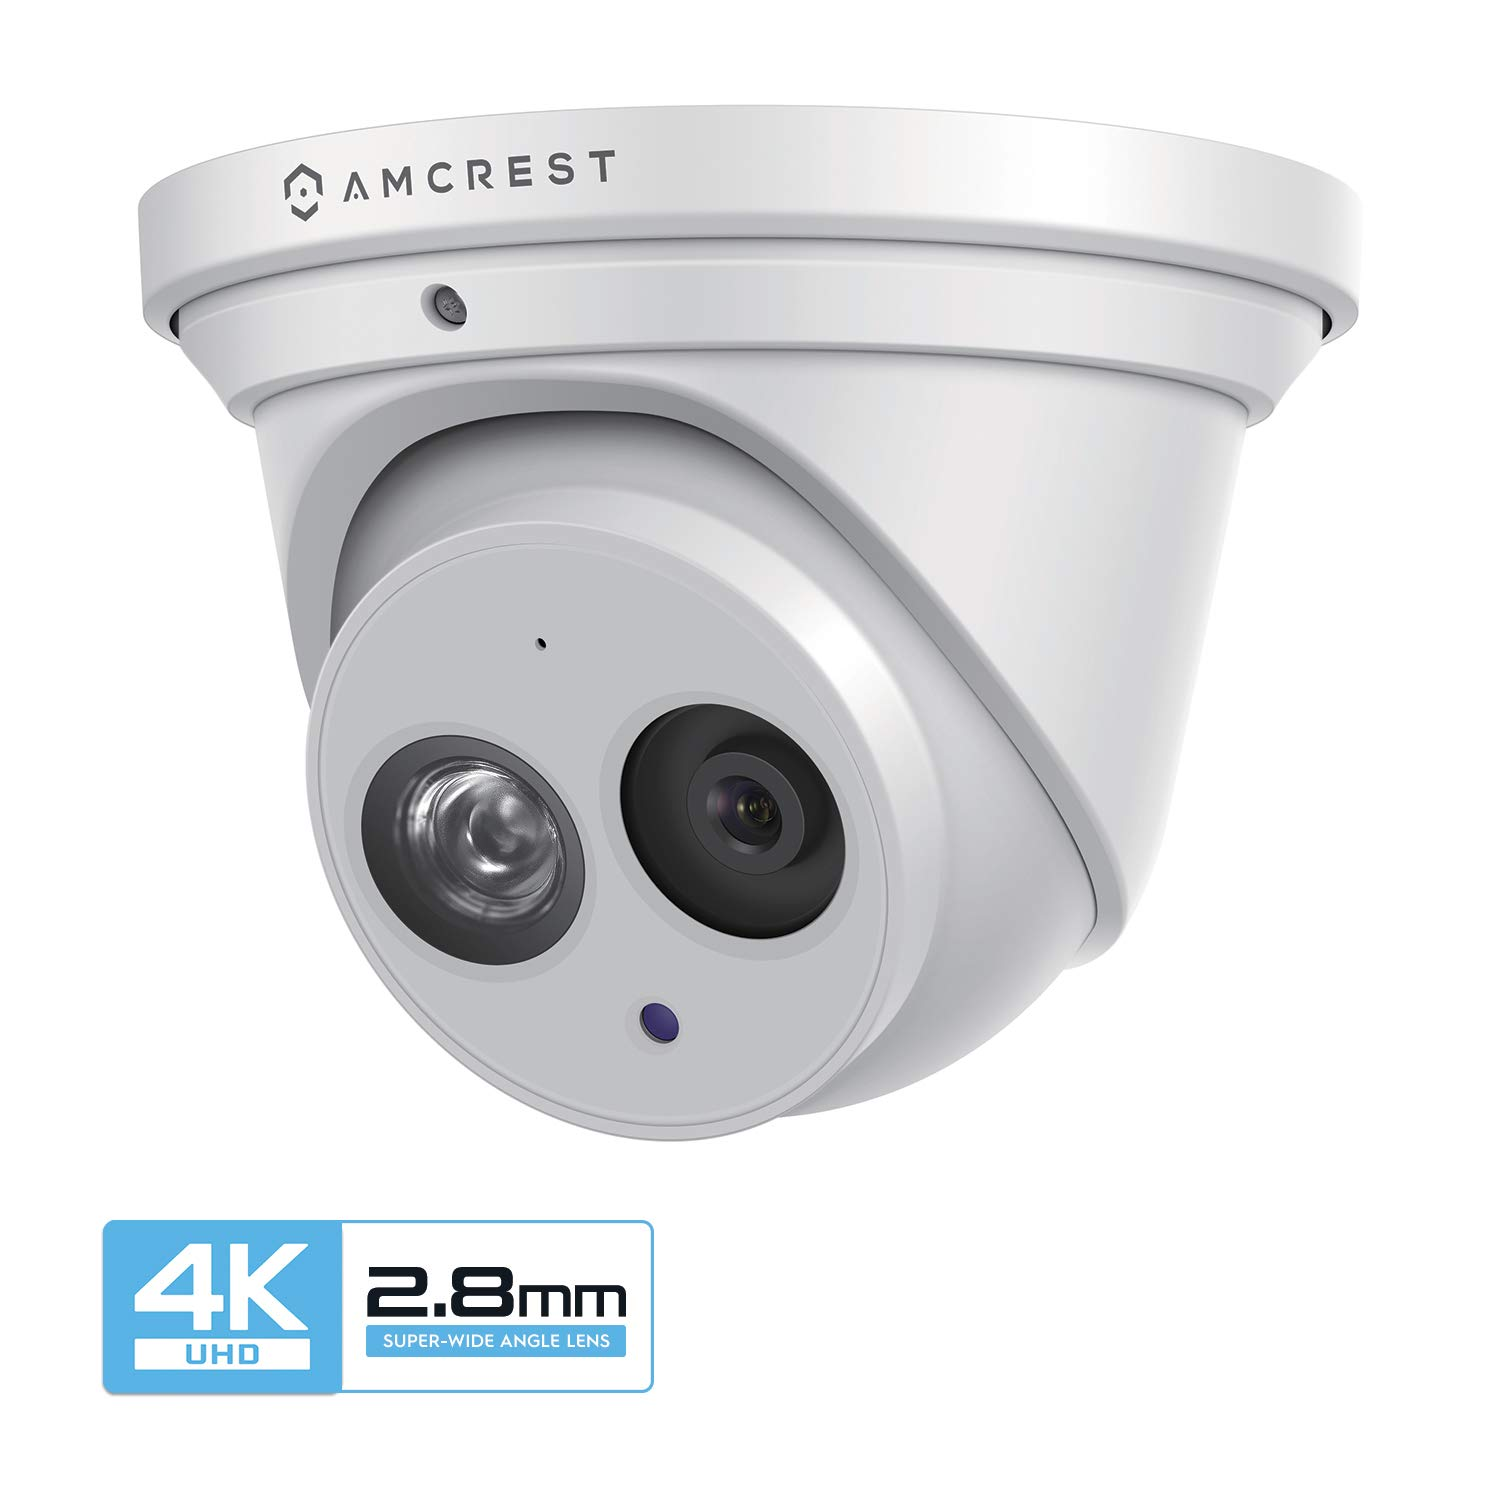 Amcrest UltraHD 4K (8MP) Outdoor Security IP Turret PoE Camera, 3840x2160, 164ft NightVision, 2.8mm Lens, IP67 Weatherproof, MicroSD Recording (128GB), White (IP8M-T2499EW) by Amcrest